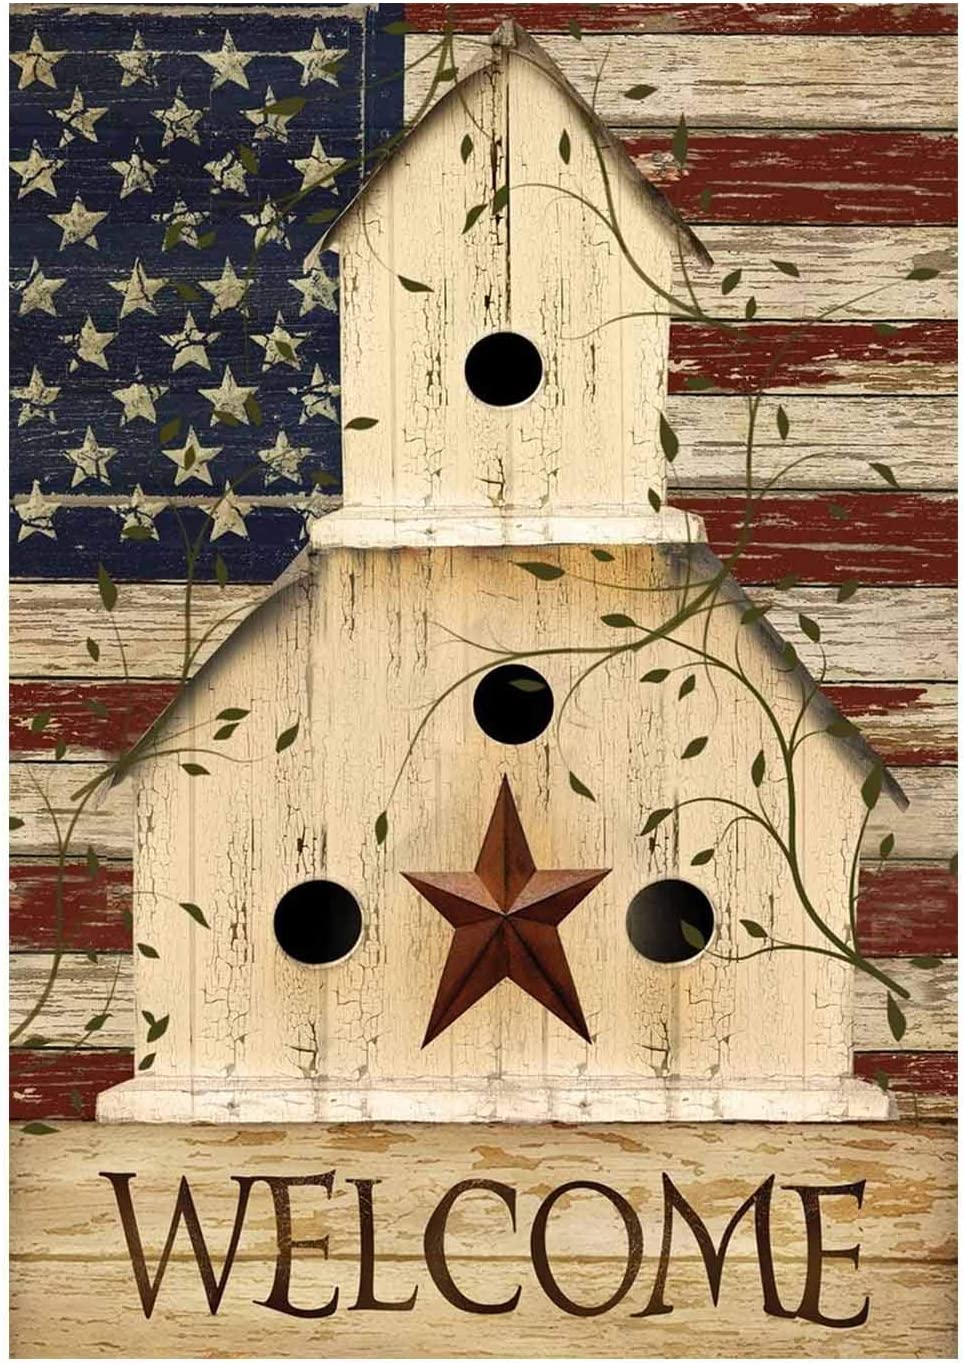 HILUCK Primitive Patriotic House Garden Flag, Vertical Double Sided Boutique Burlap Decorative Banners Decor for Patio Lawn and Backyard, 12 x 18 Inch